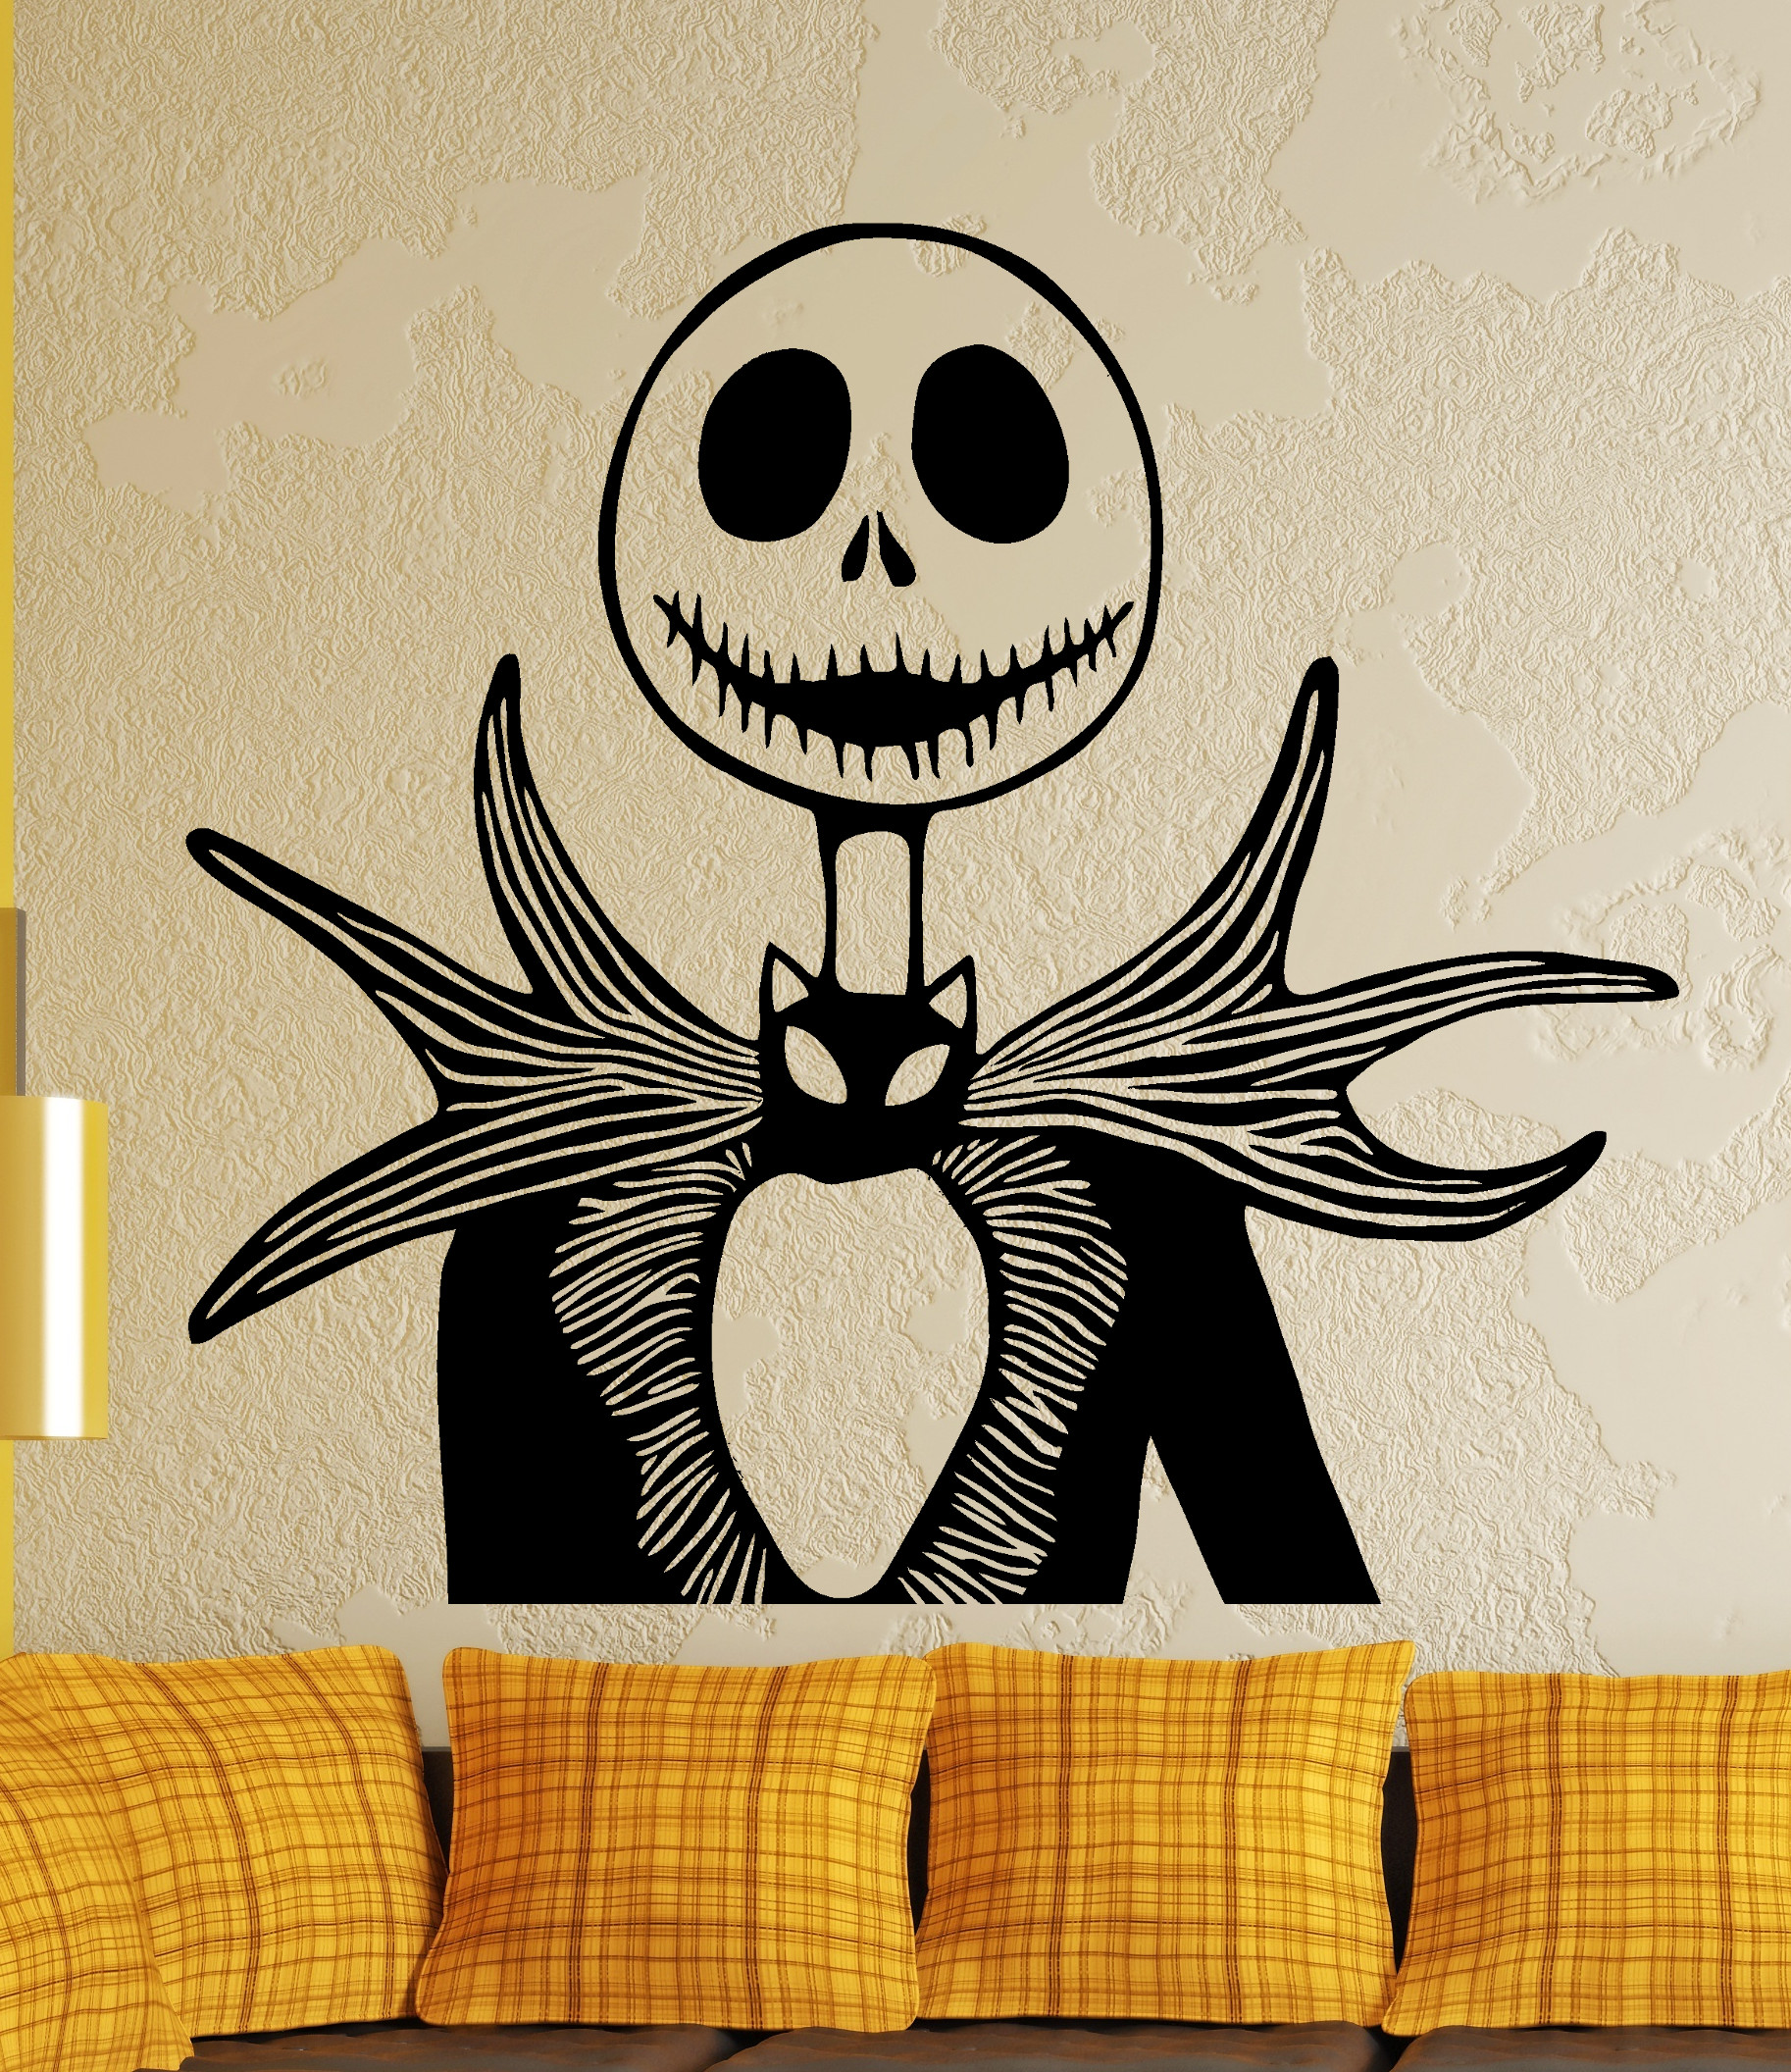 Streetwall - Wall Decal Jack Skellington - Nightmare Before Christmas